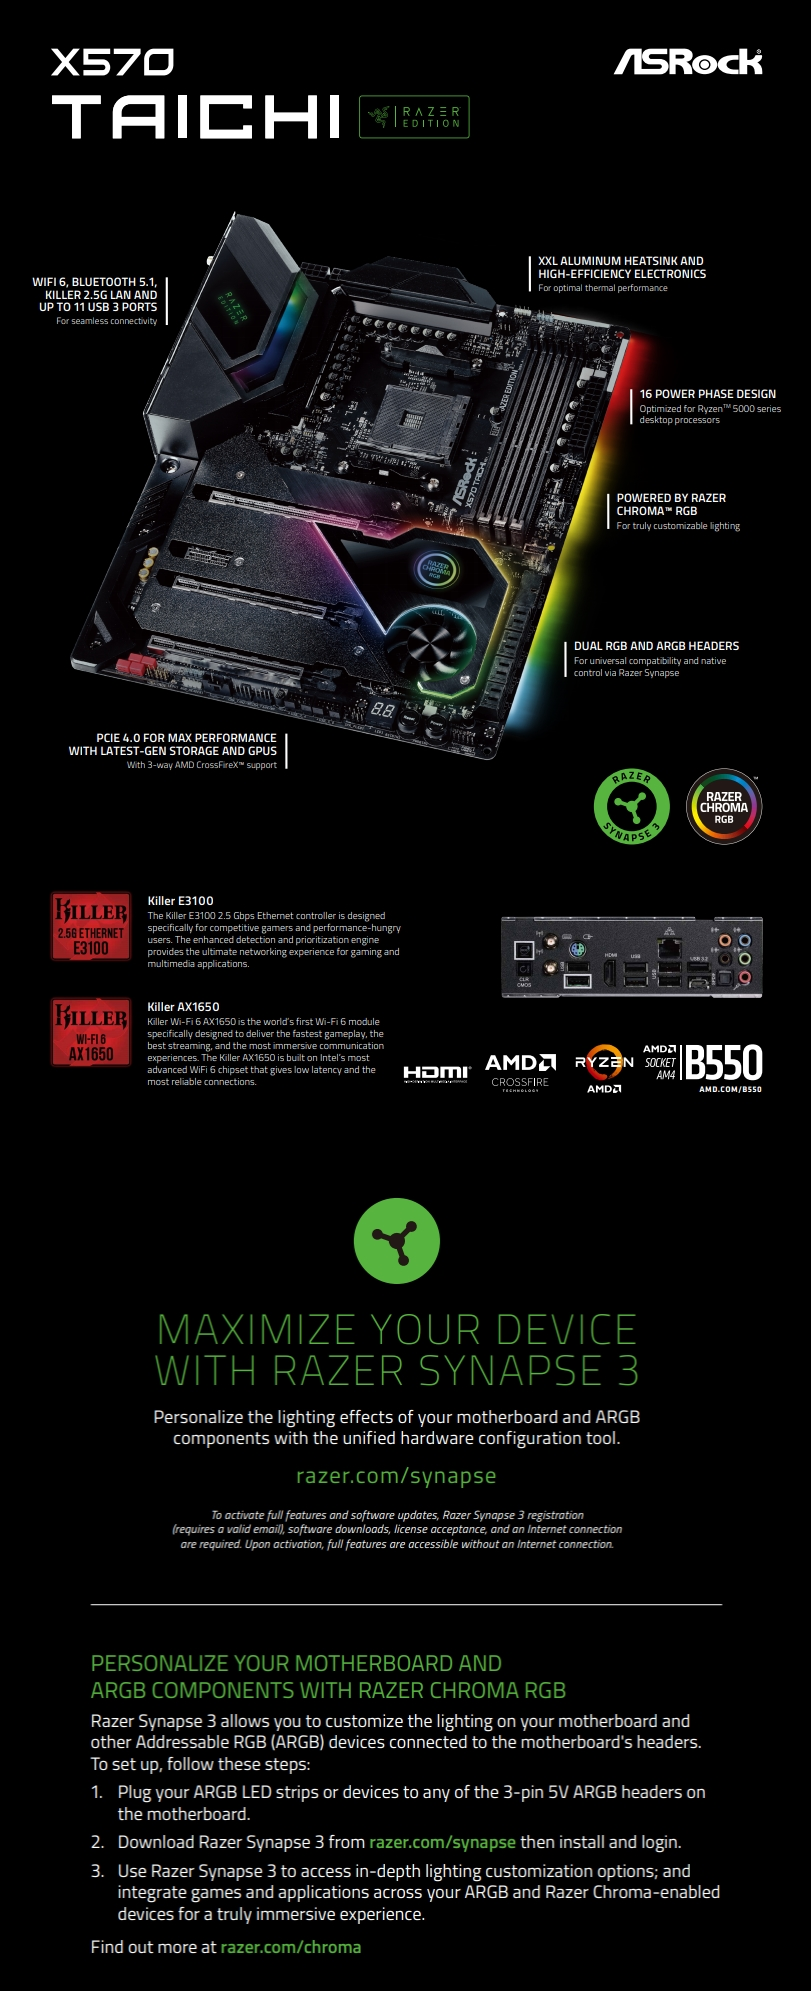 A large marketing image providing additional information about the product ASRock X570 Taichi Razer Edition AM4 ATX Desktop Motherboard - Additional alt info not provided